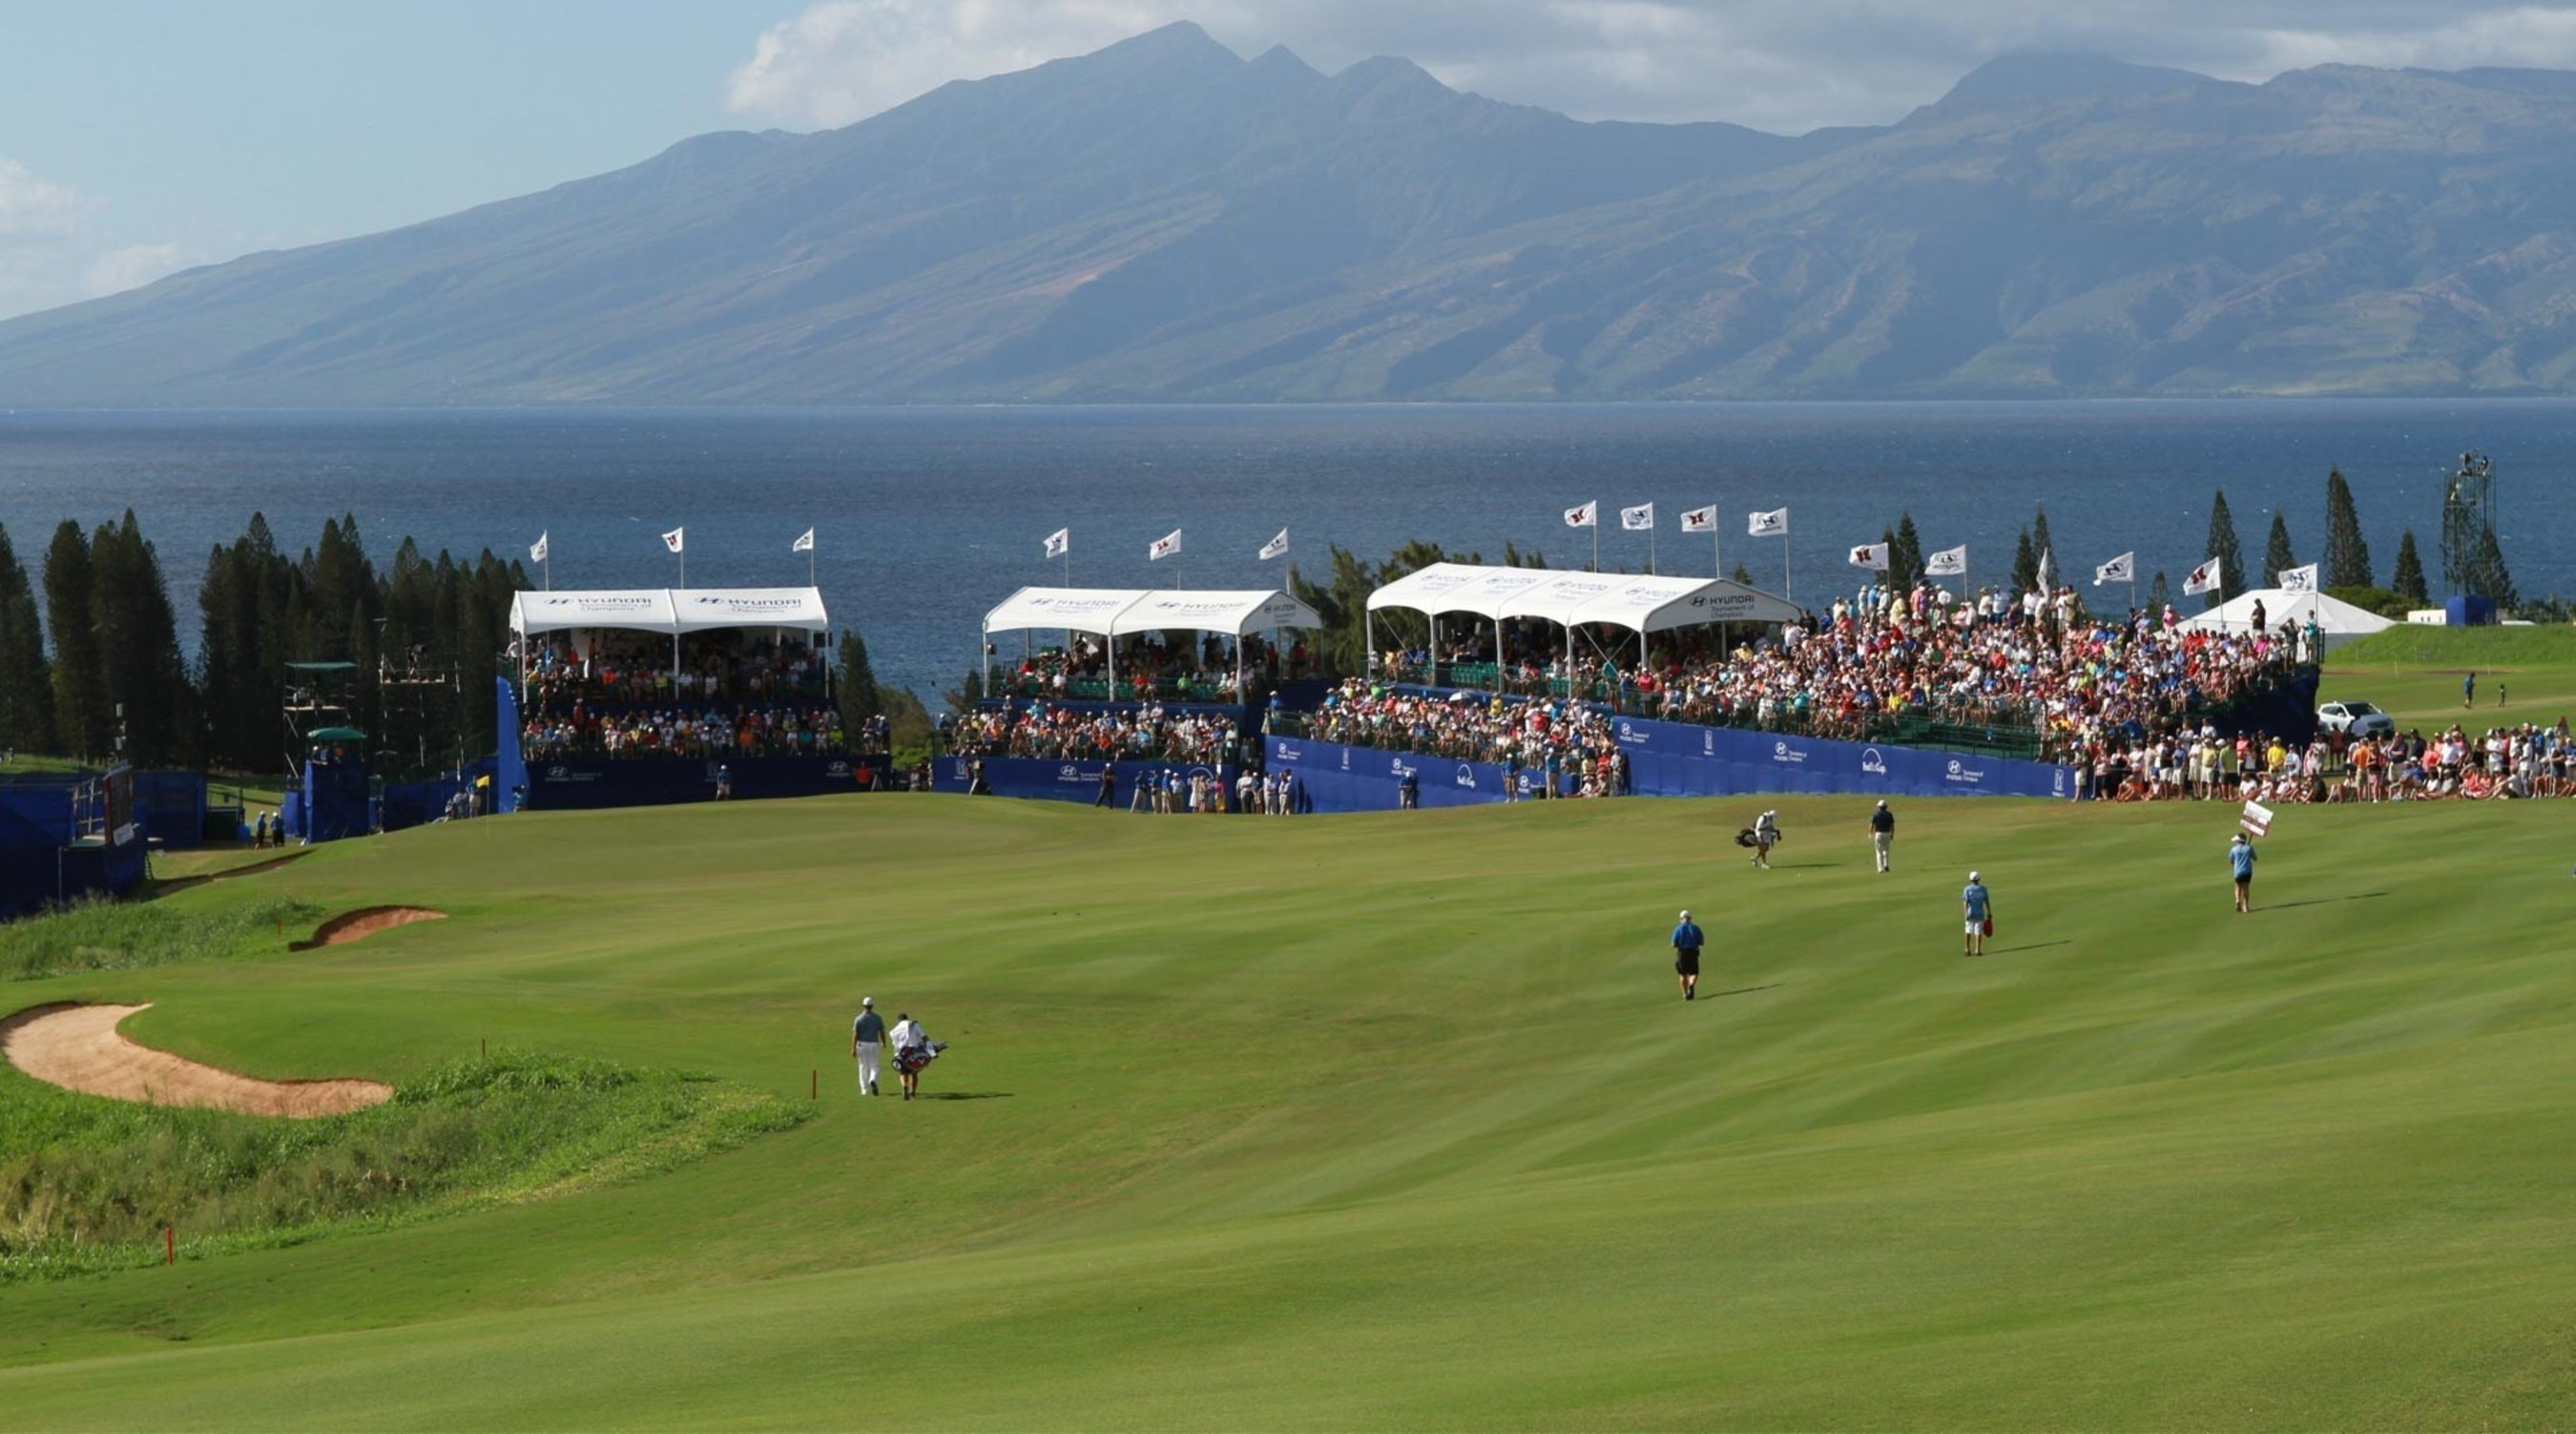 Great The Hyundai Tournament Of Champions Starts This Week In Maui Featuring 34  PGA TOUR Winners From